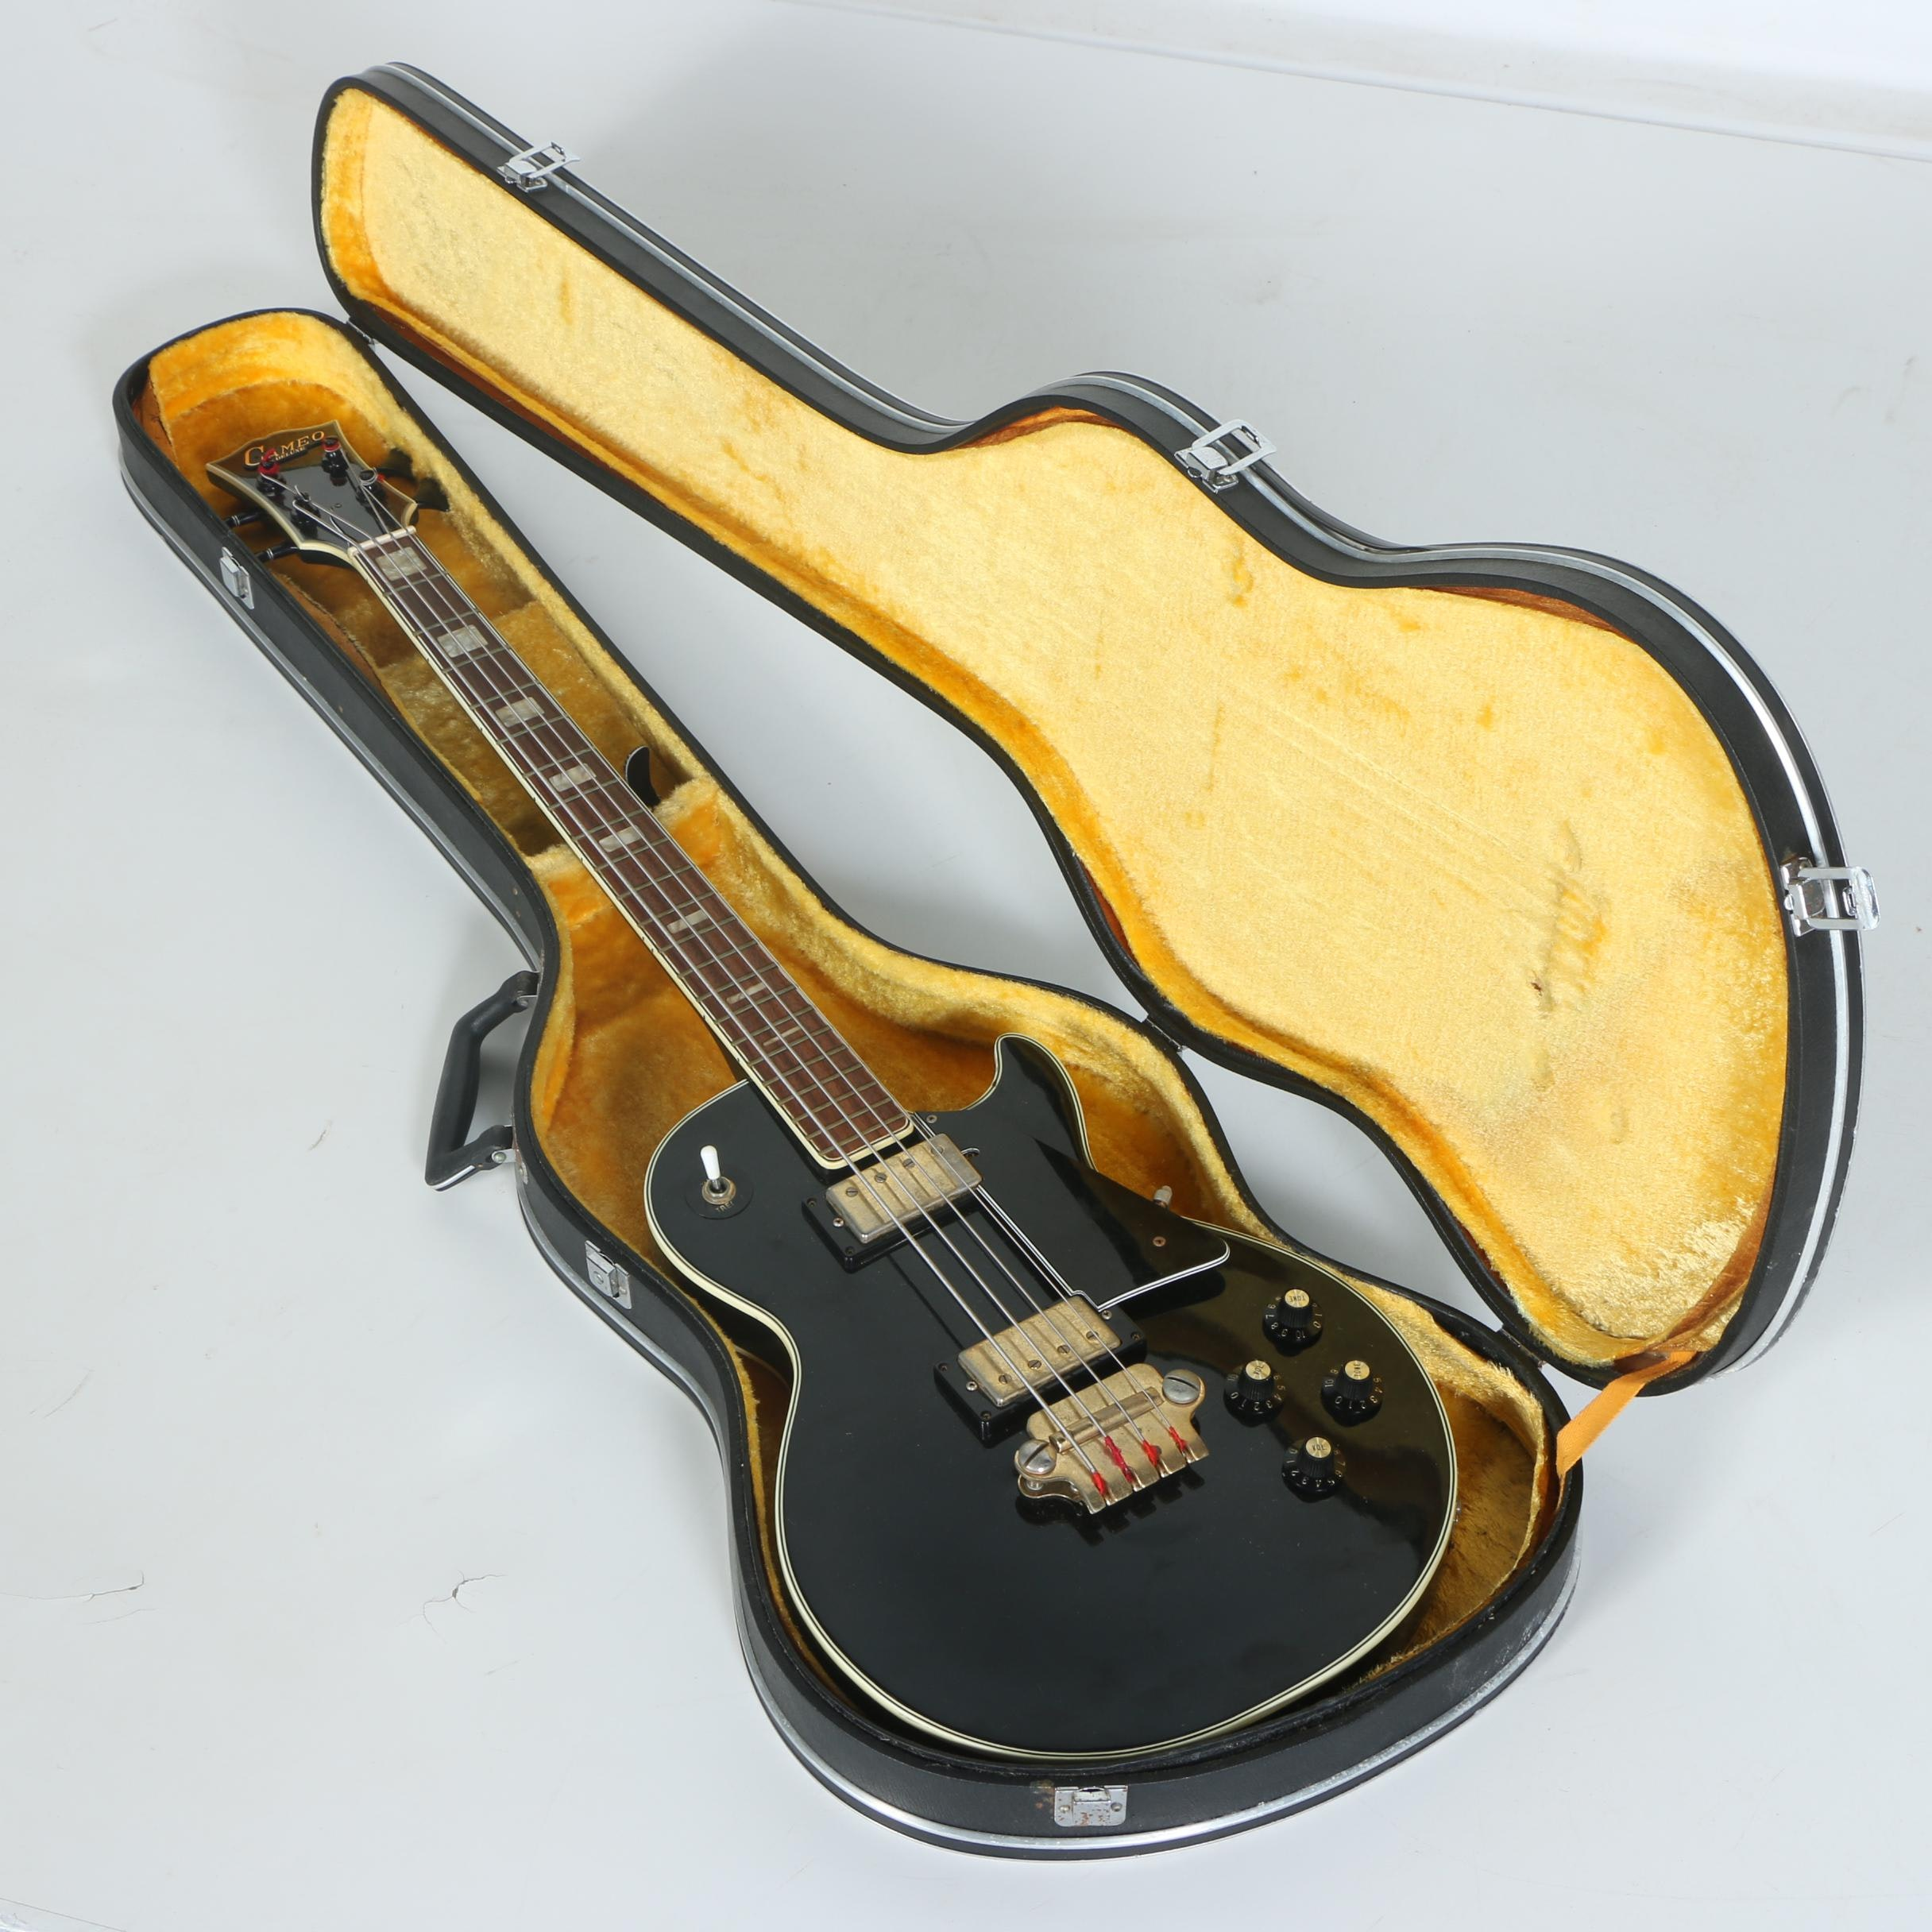 Cameo Deluxe 1960s Electric Bass Guitar with Case